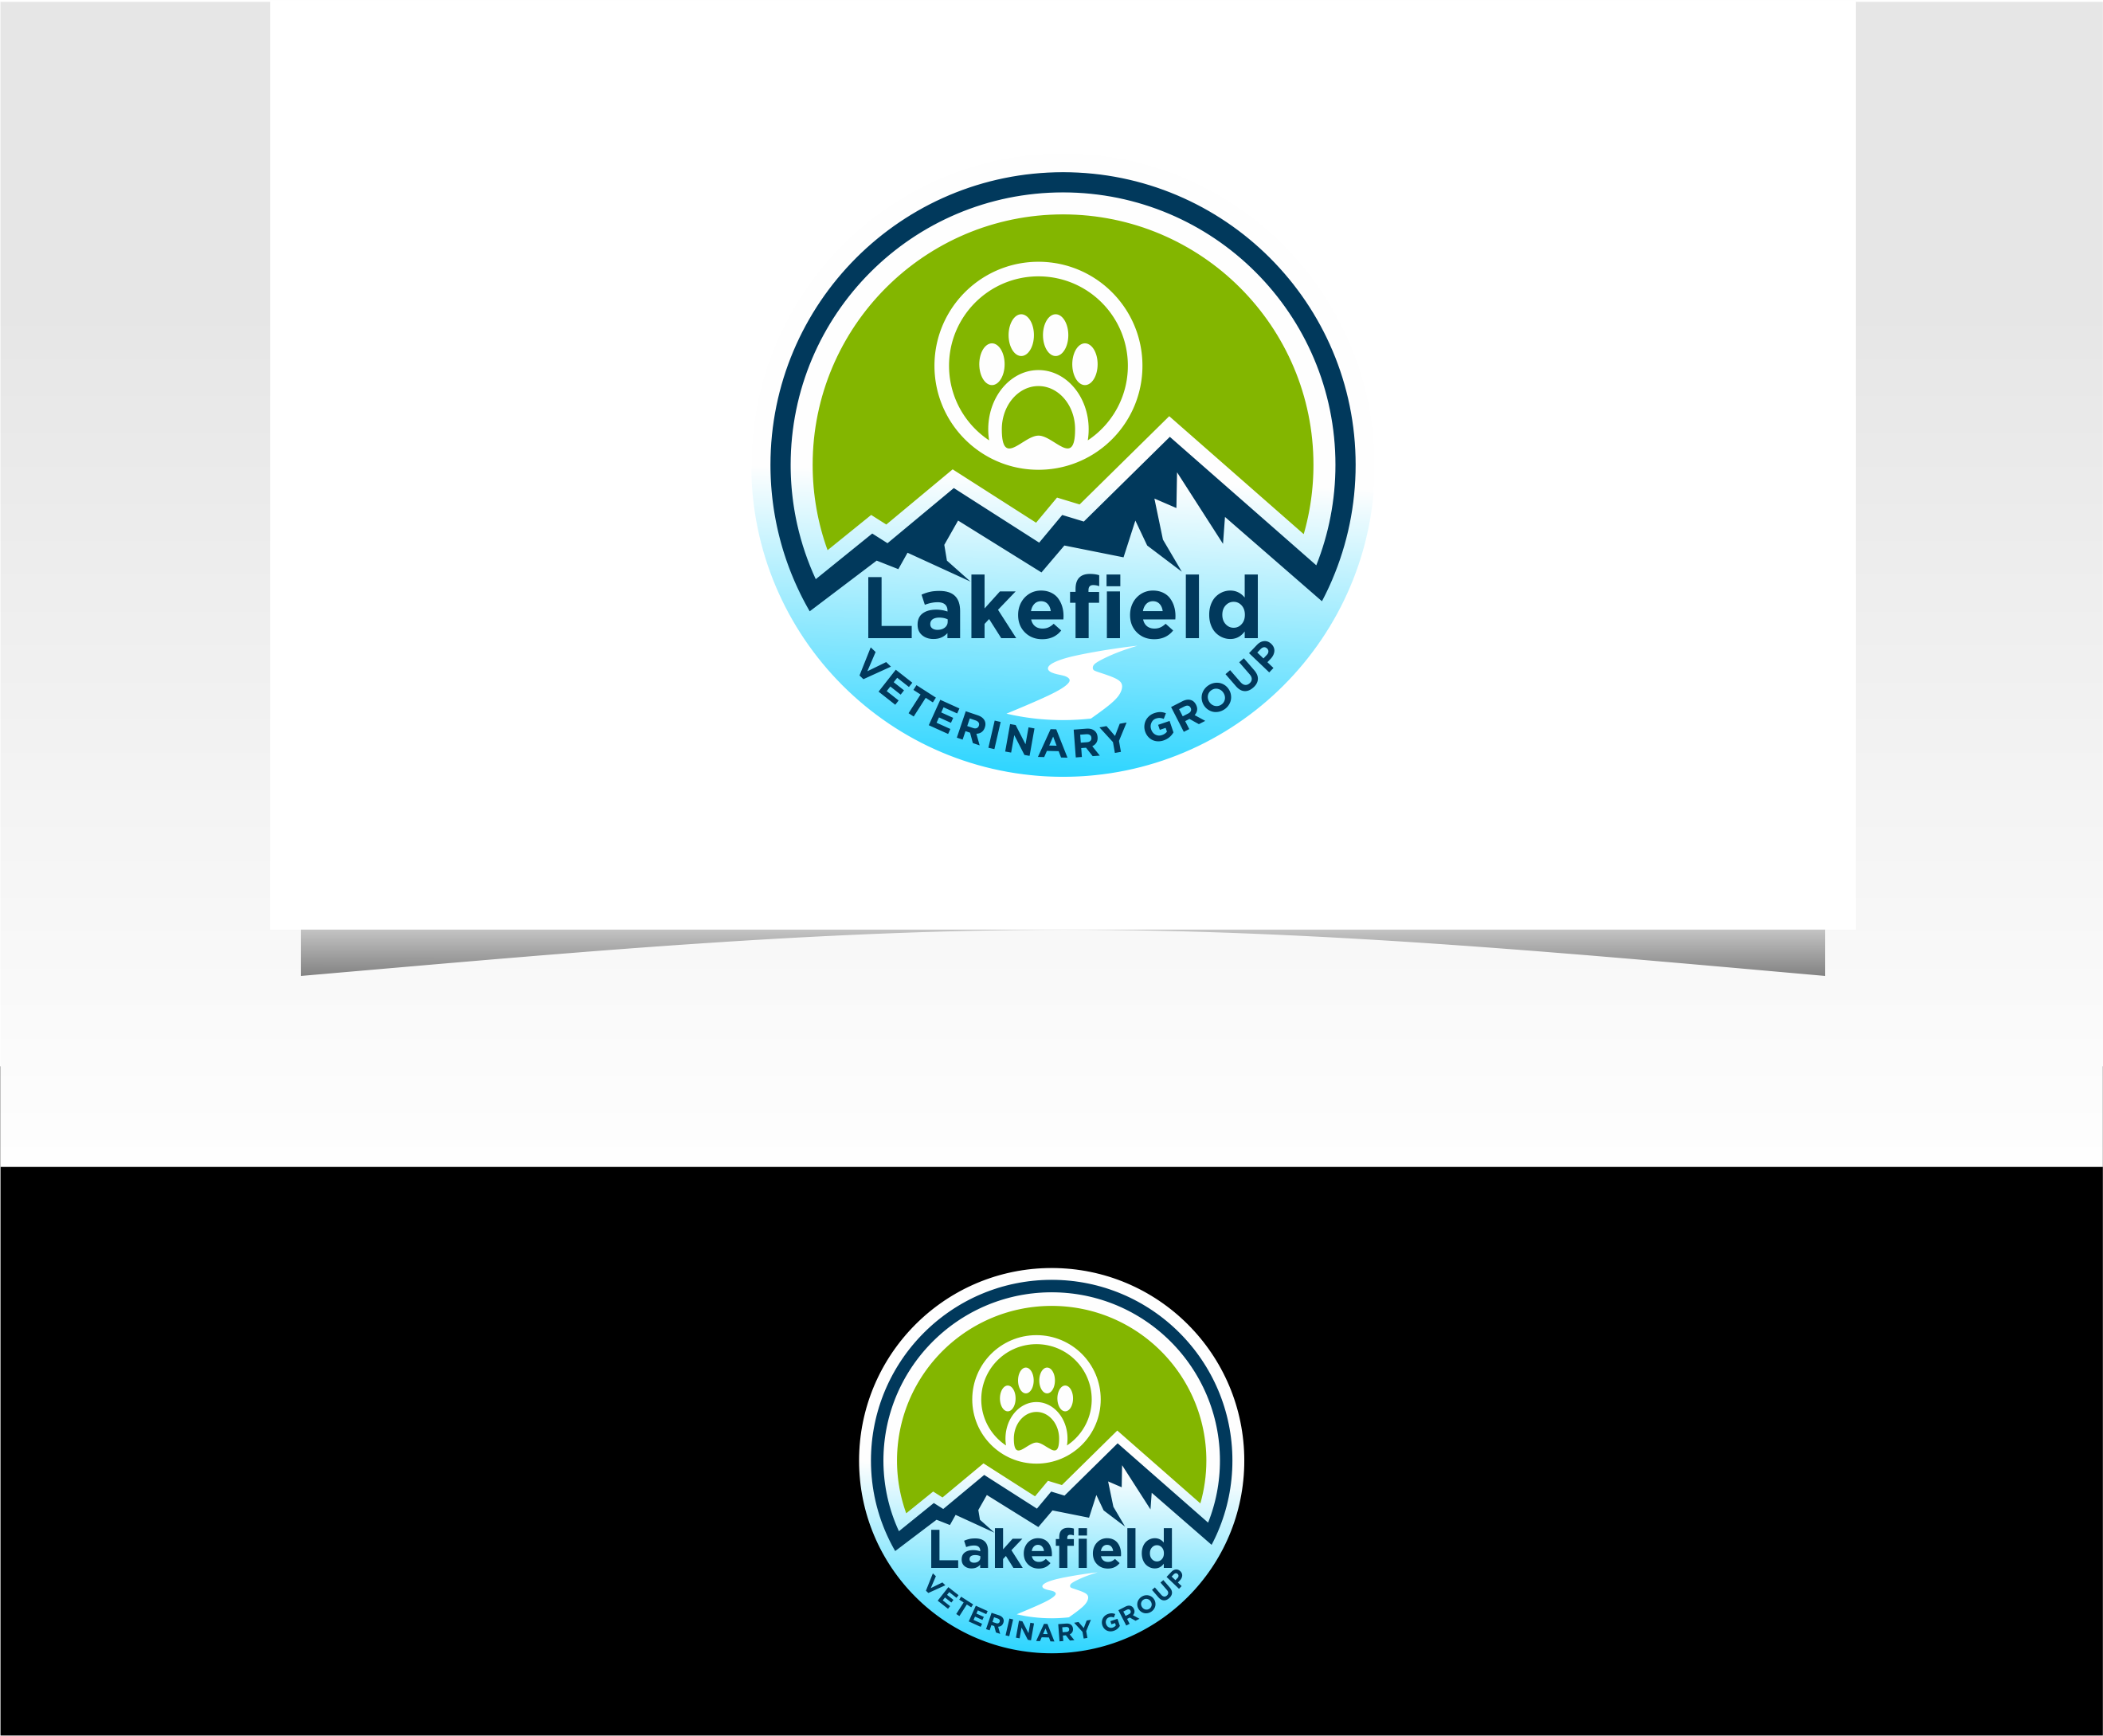 Logo Design by Raymond Garcia - Entry No. 43 in the Logo Design Contest Inspiring Logo Design for Lakefield Veterinary Group.